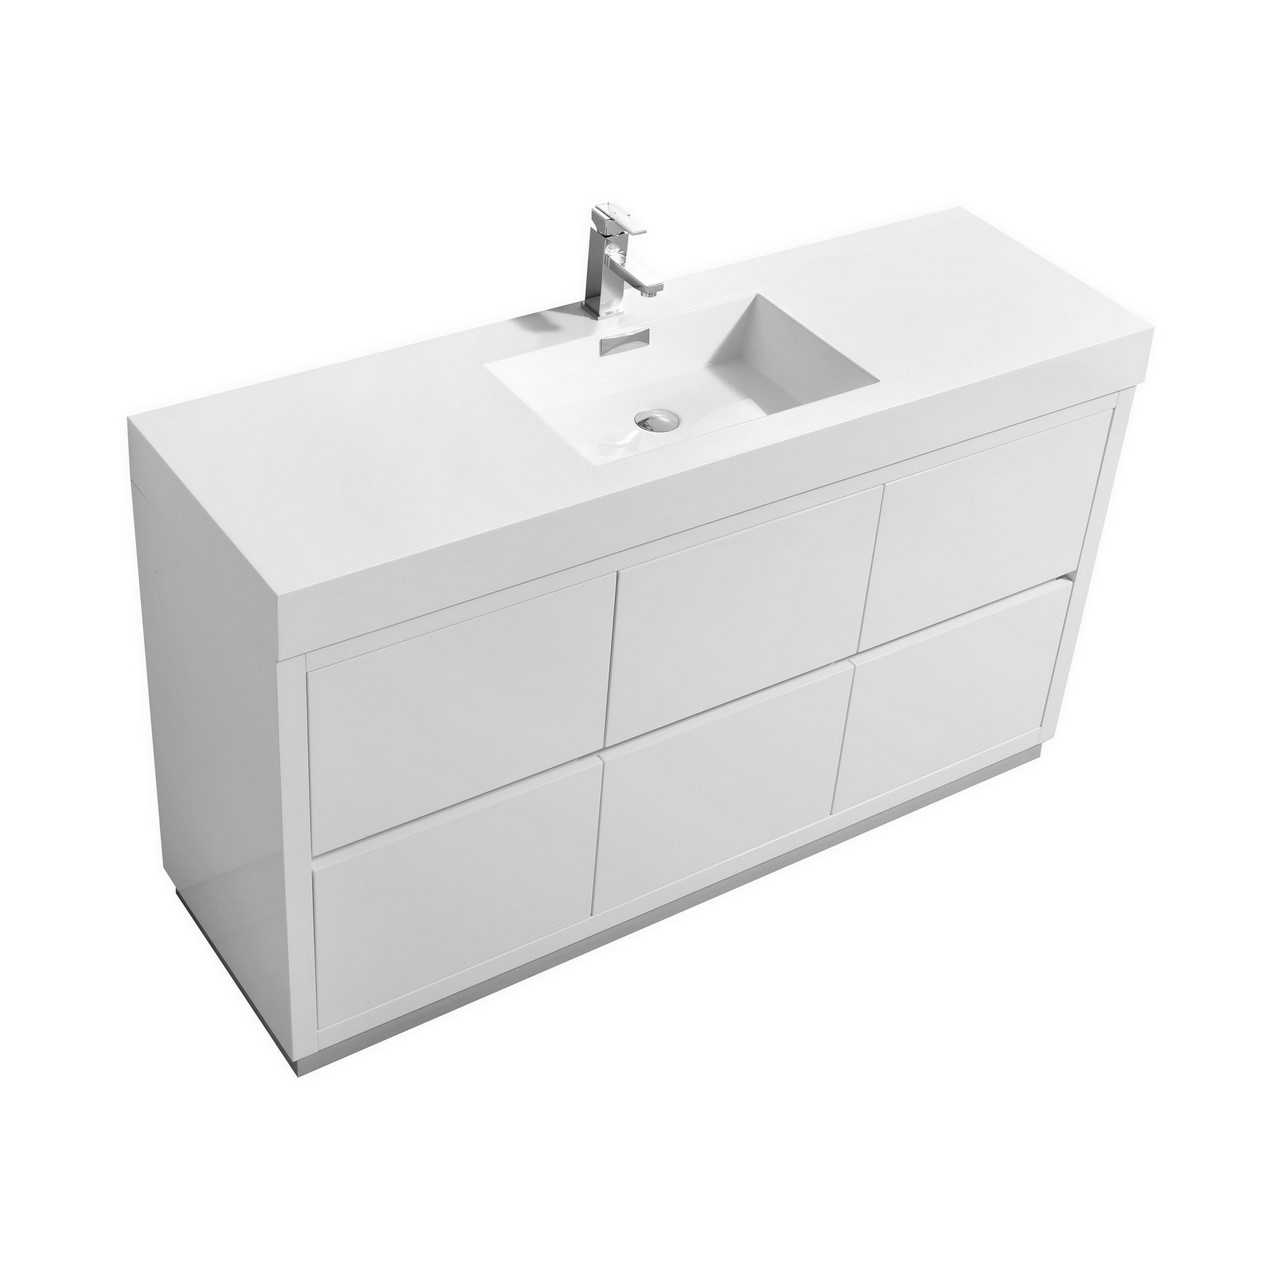 free bathroom sink bliss 60 quot single sink high gloss white free standing vanity 12908